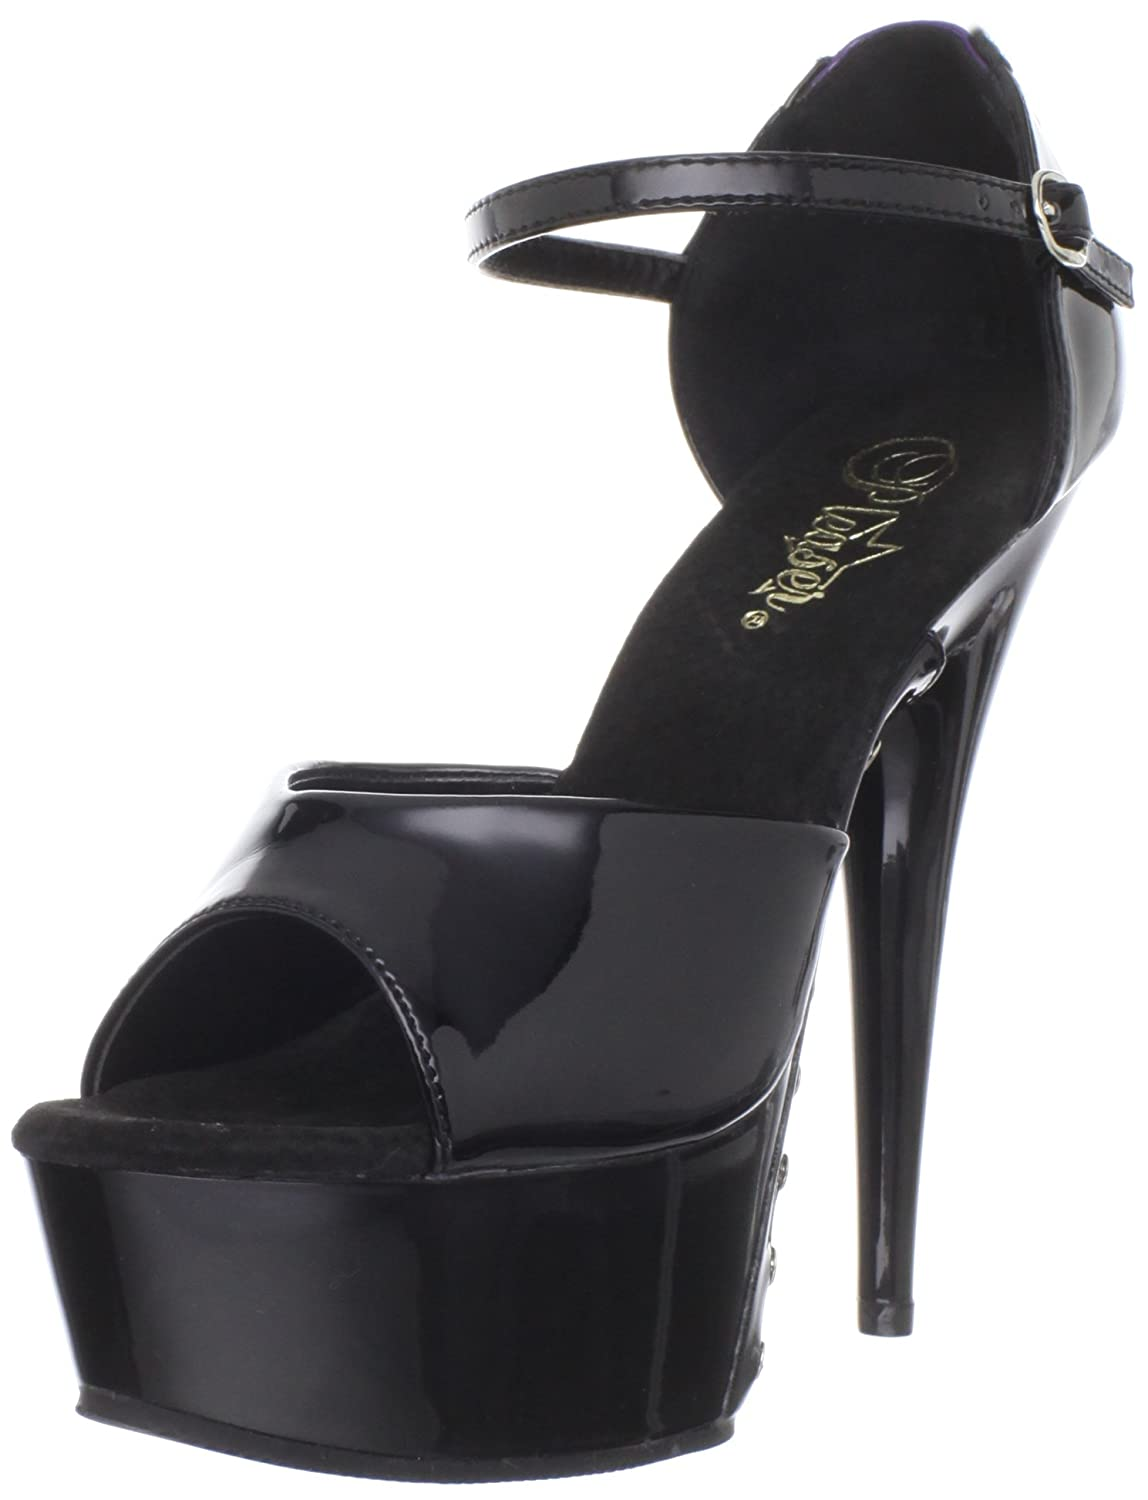 Pleaser Women's Delight-660FH Platform Sandal B0044CZ2NU 6 B(M) US|Black Purple Patent/Black